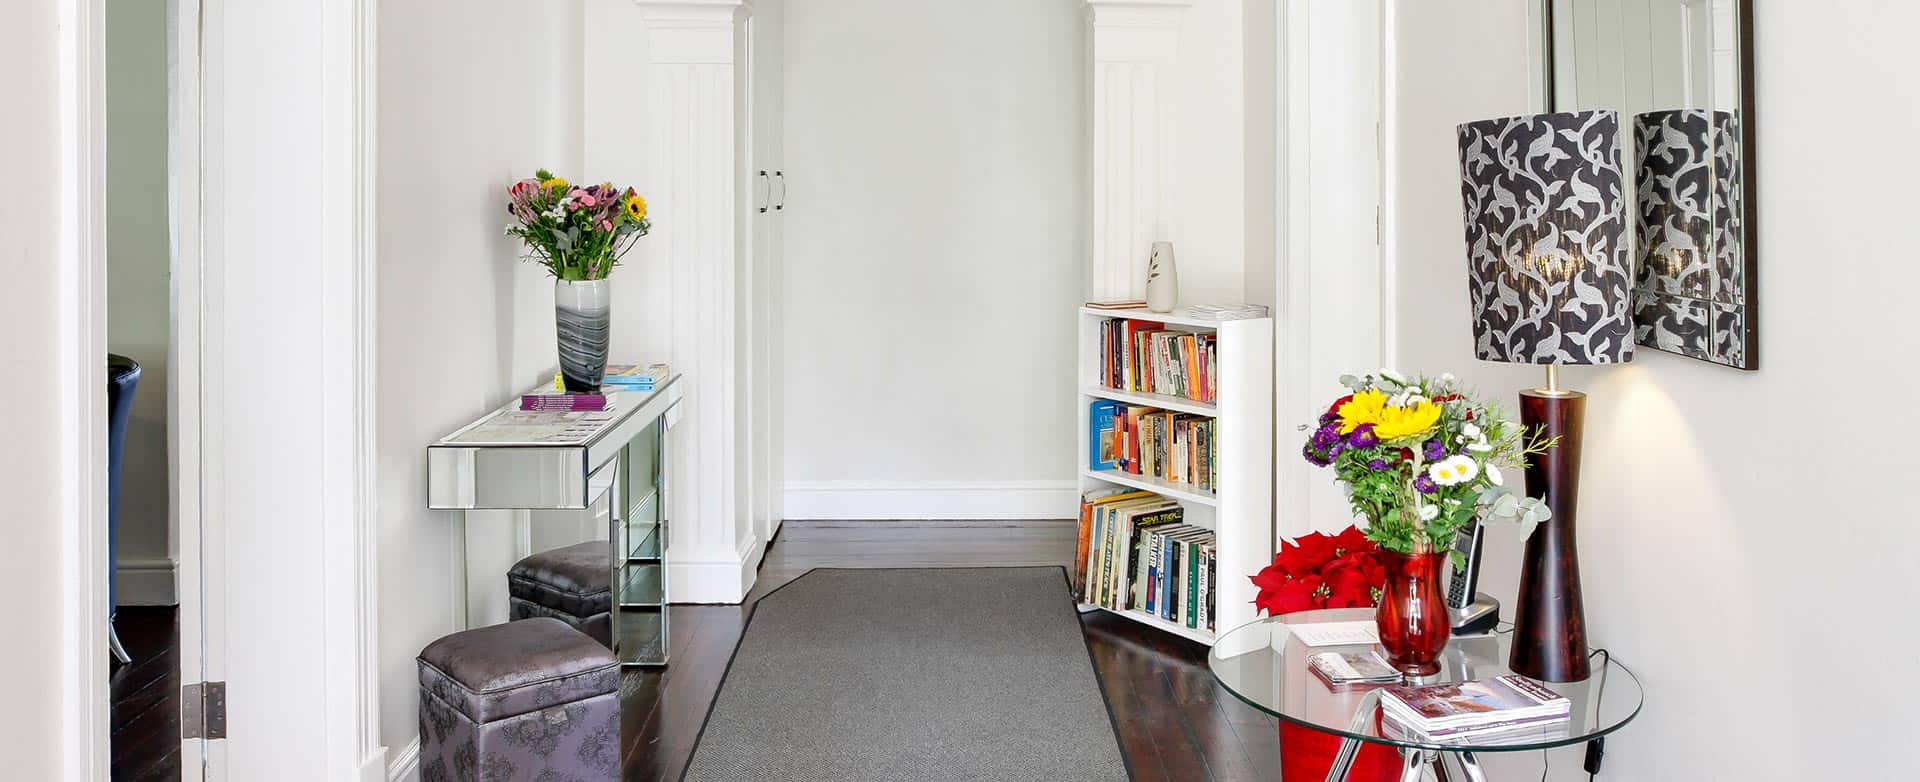 Self catering apartments entranceway